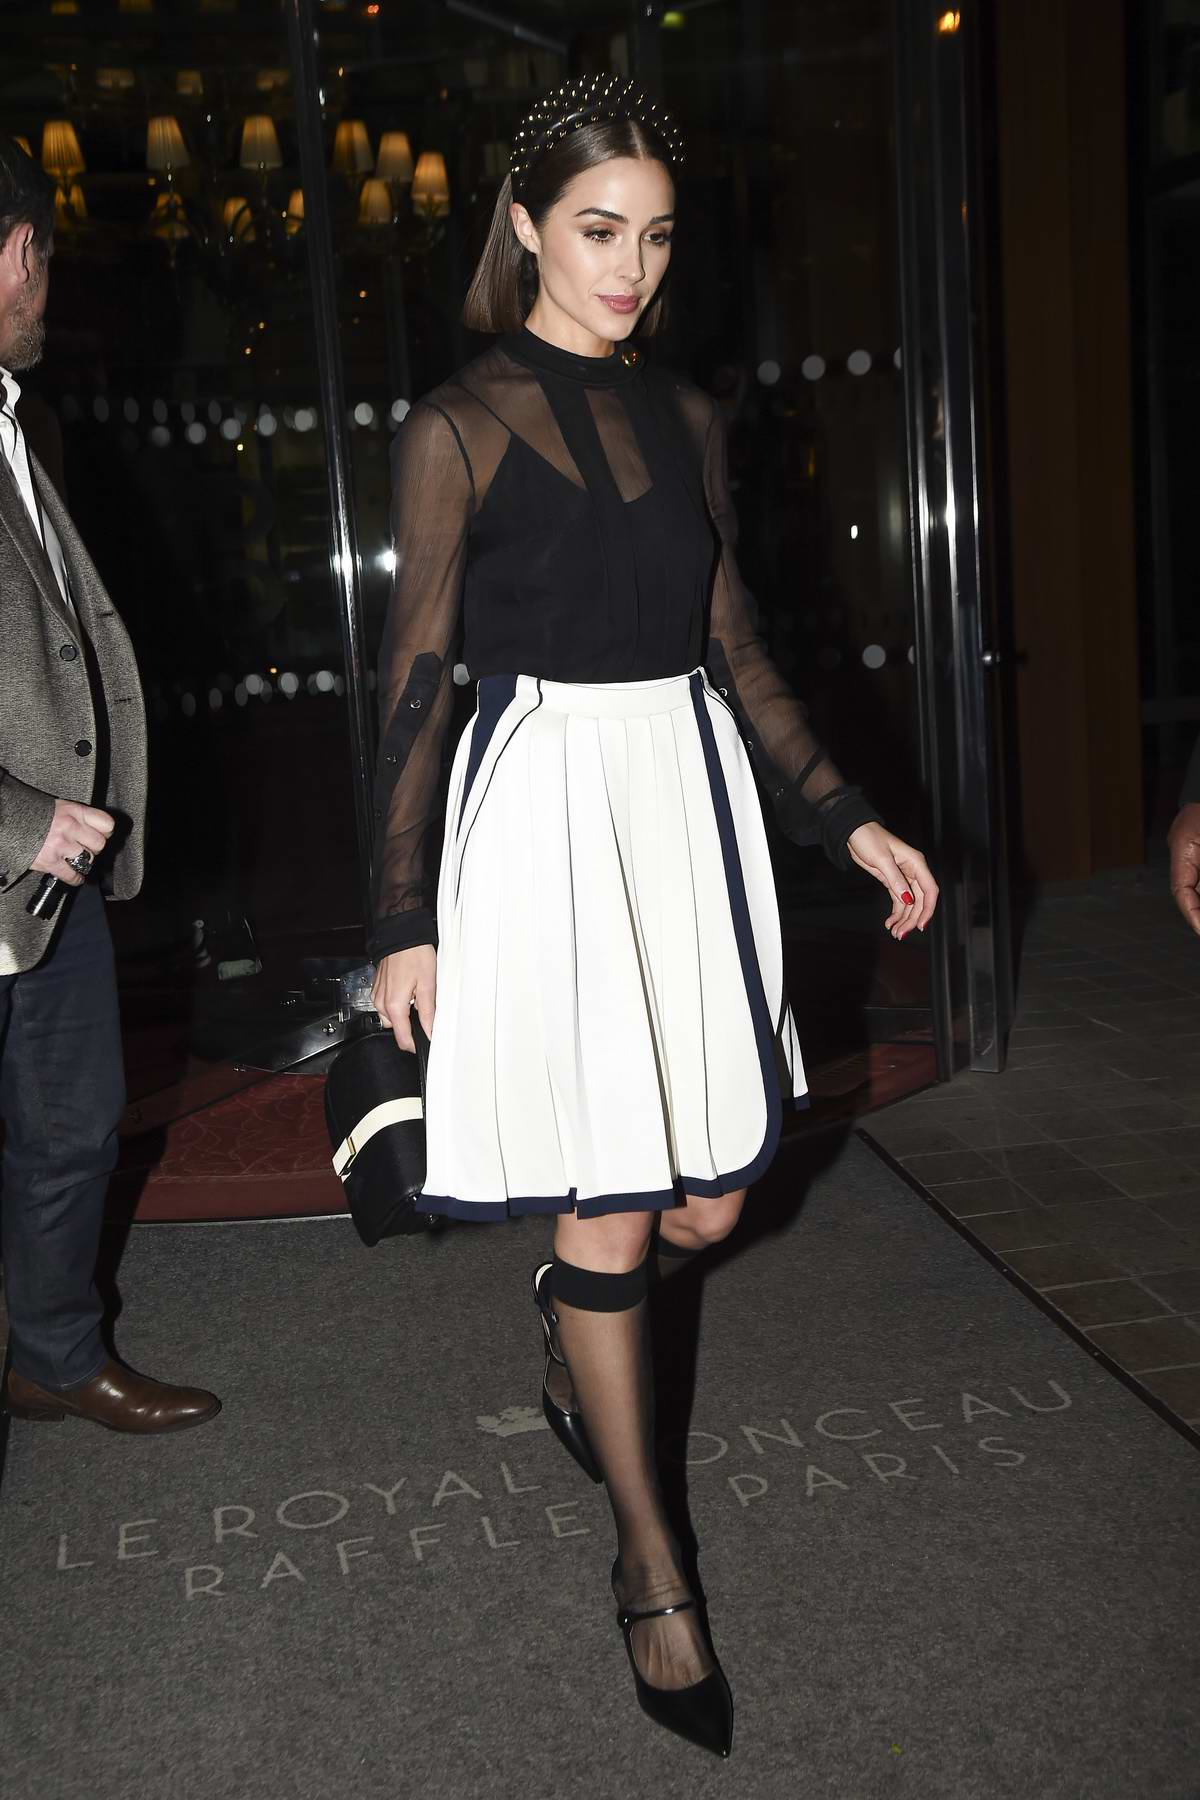 Olivia culpo seen leaving her hotel as she heads to pradas party during paris fashion week 2019 in paris france